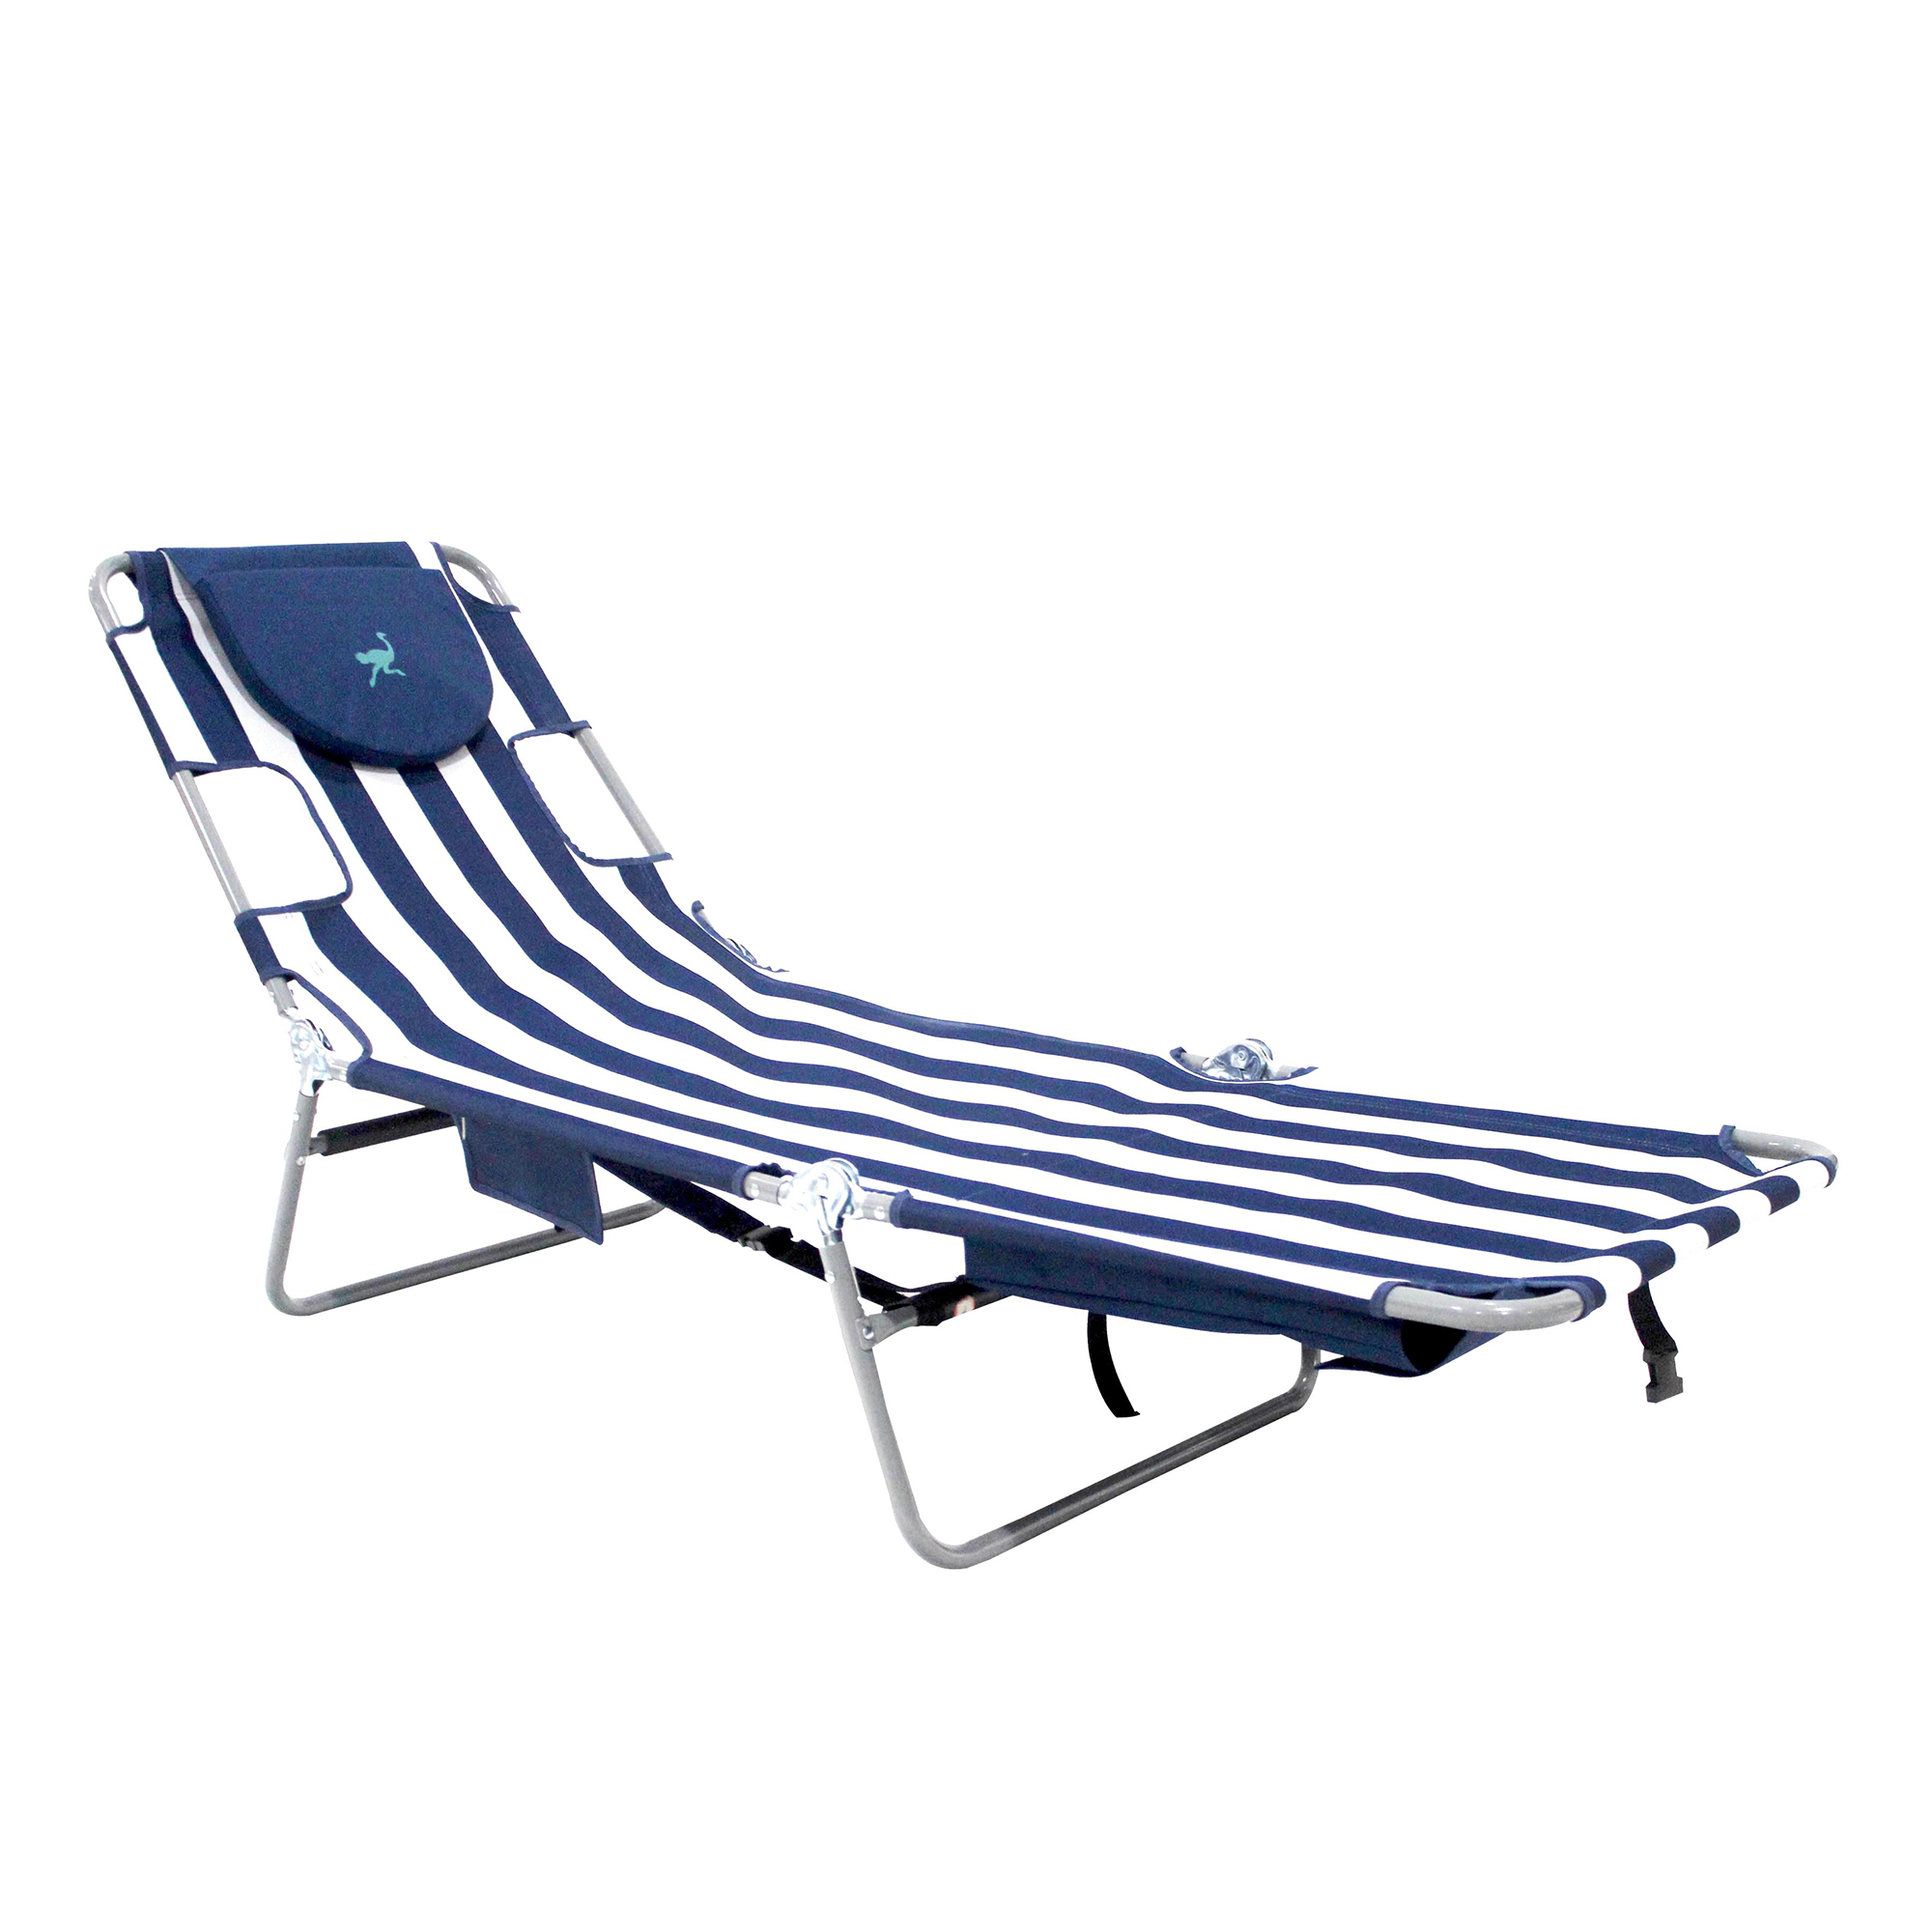 Ostrich Backpack Chaise Lounge, Blue/White